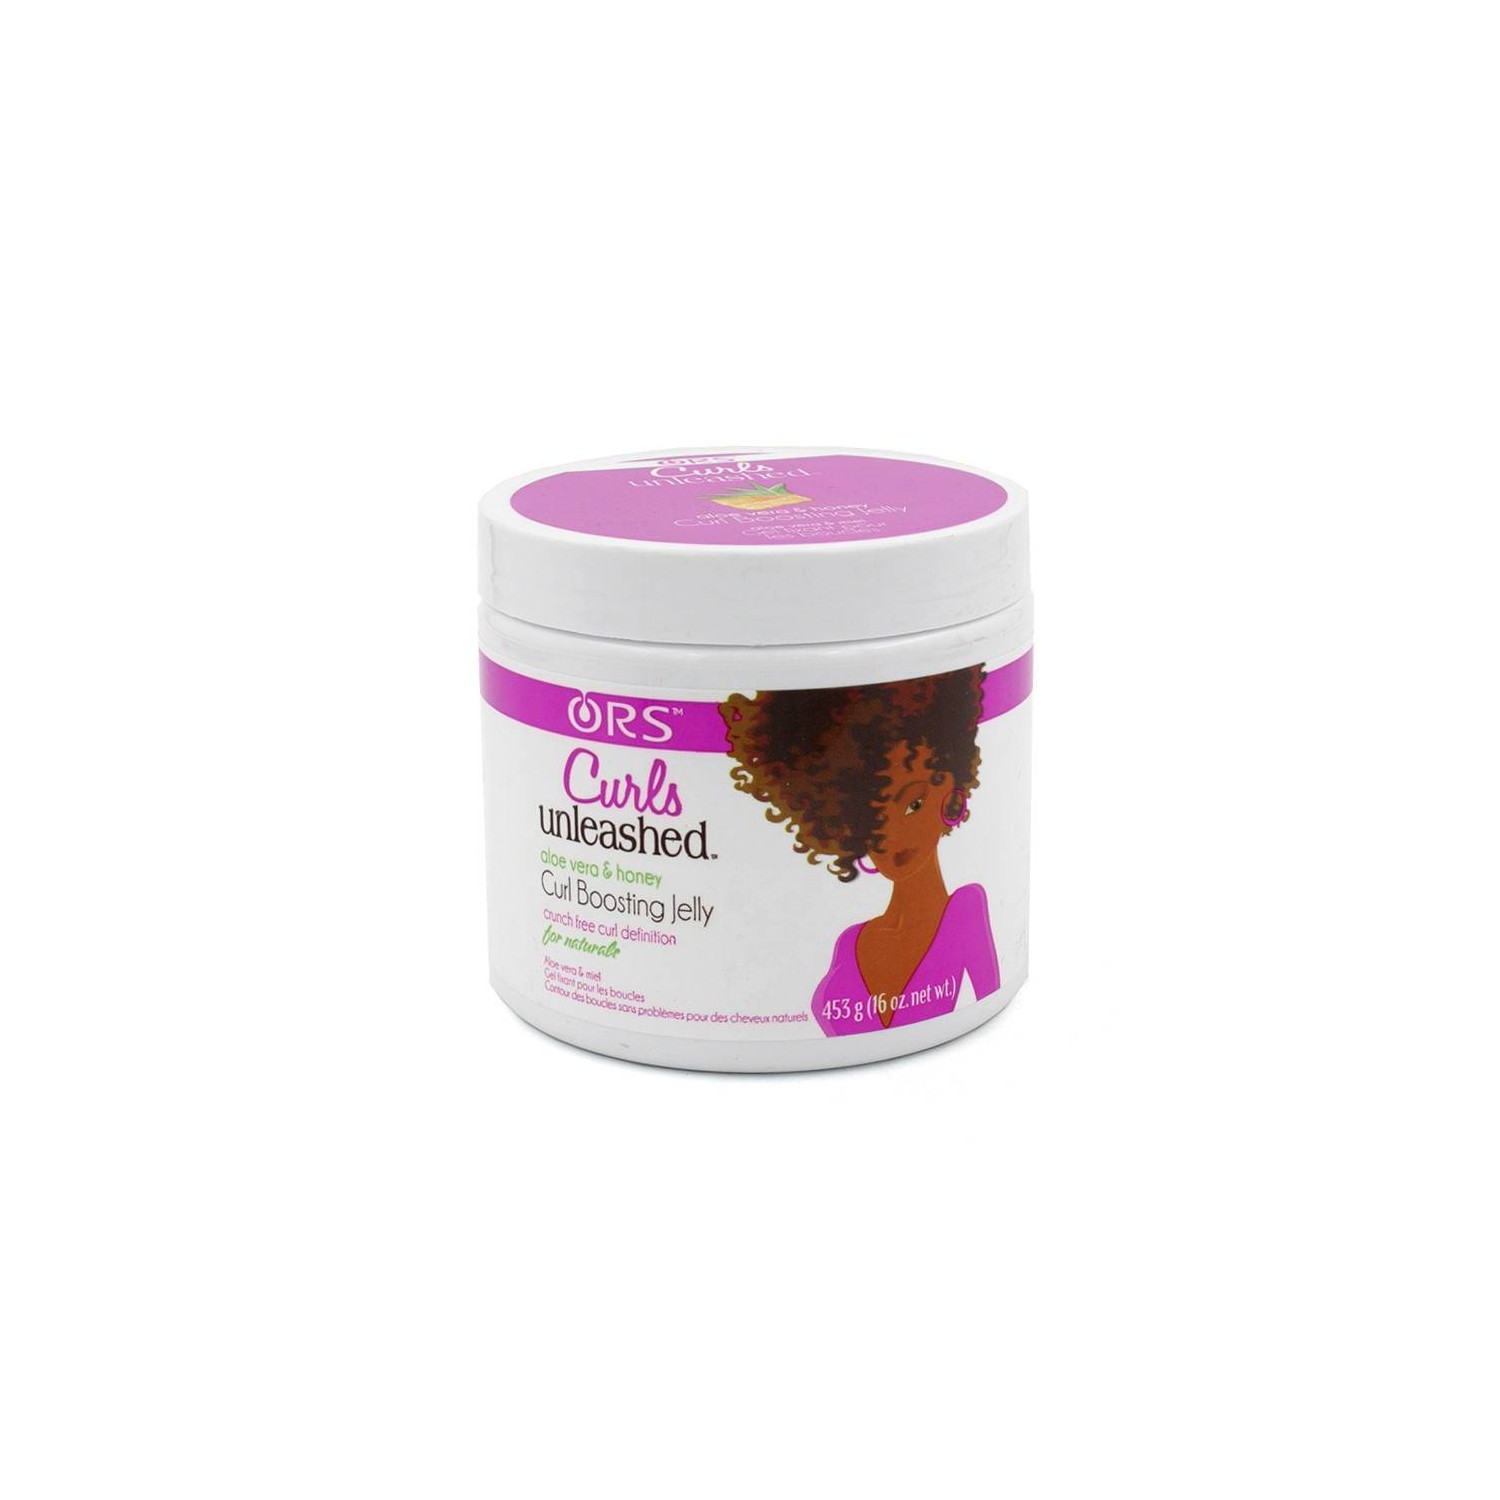 Ors Curls Unleashed Boosting Jelly 453 Gr